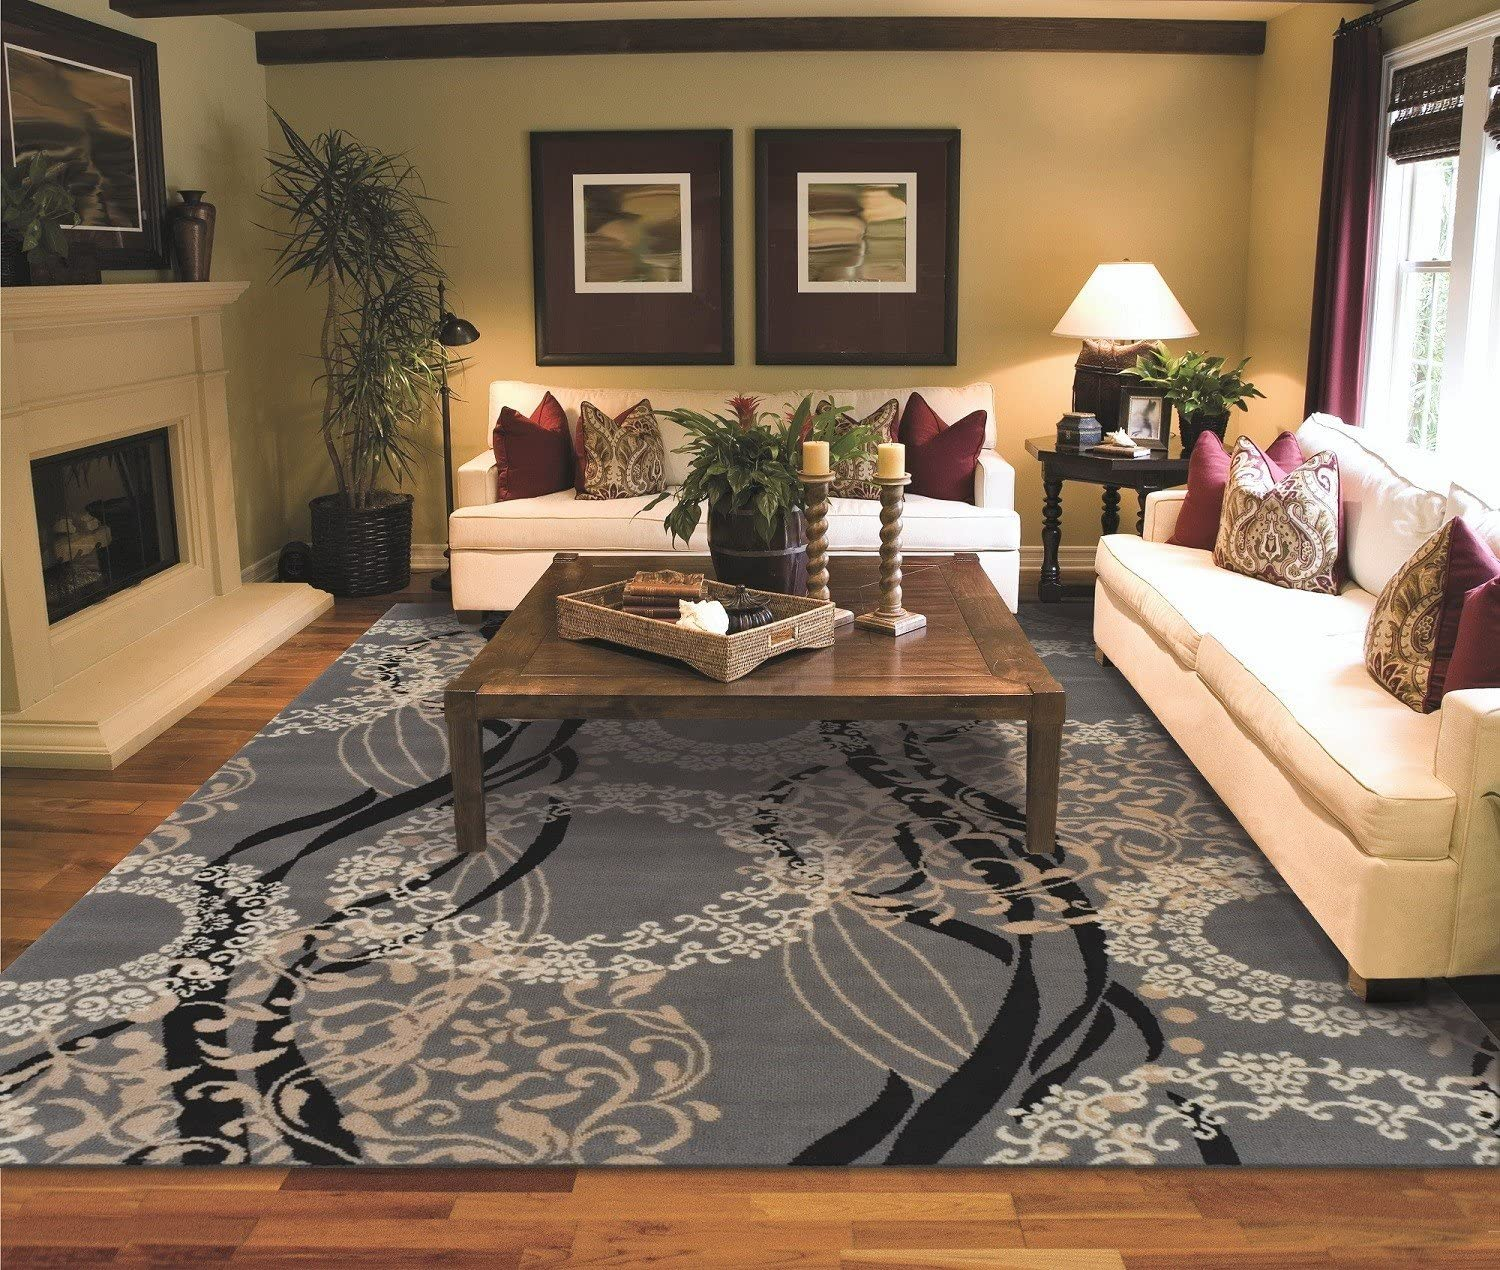 Amazon.com: Large Area Rugs for Living Room 8x10 Gray: Home & Kitchen